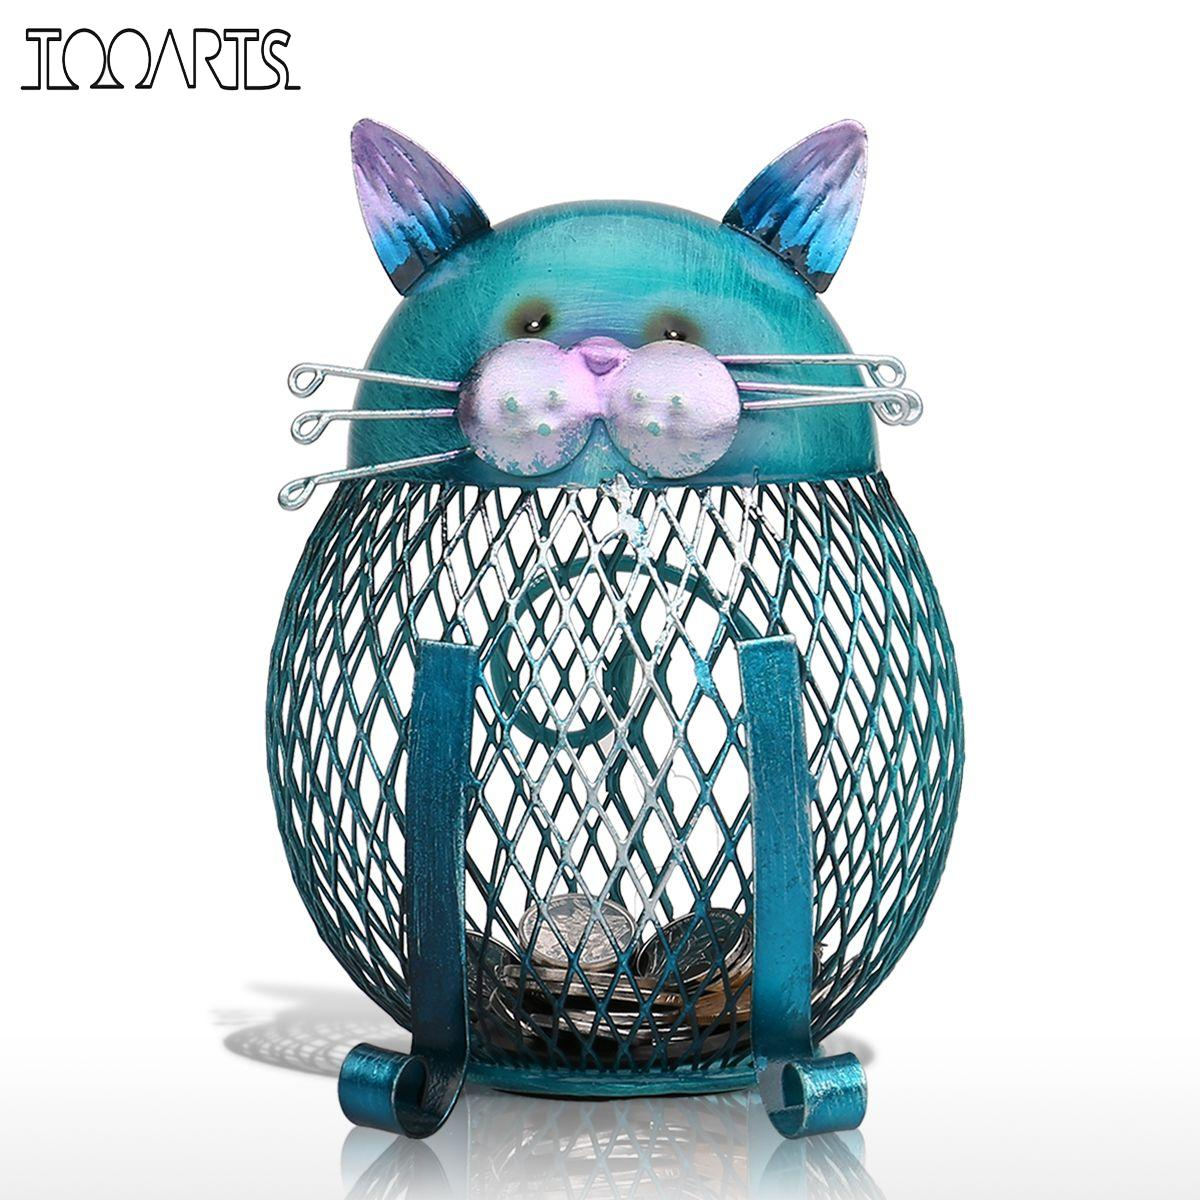 tooarts blue cat bank shaped piggy bank metal coin bank. Black Bedroom Furniture Sets. Home Design Ideas